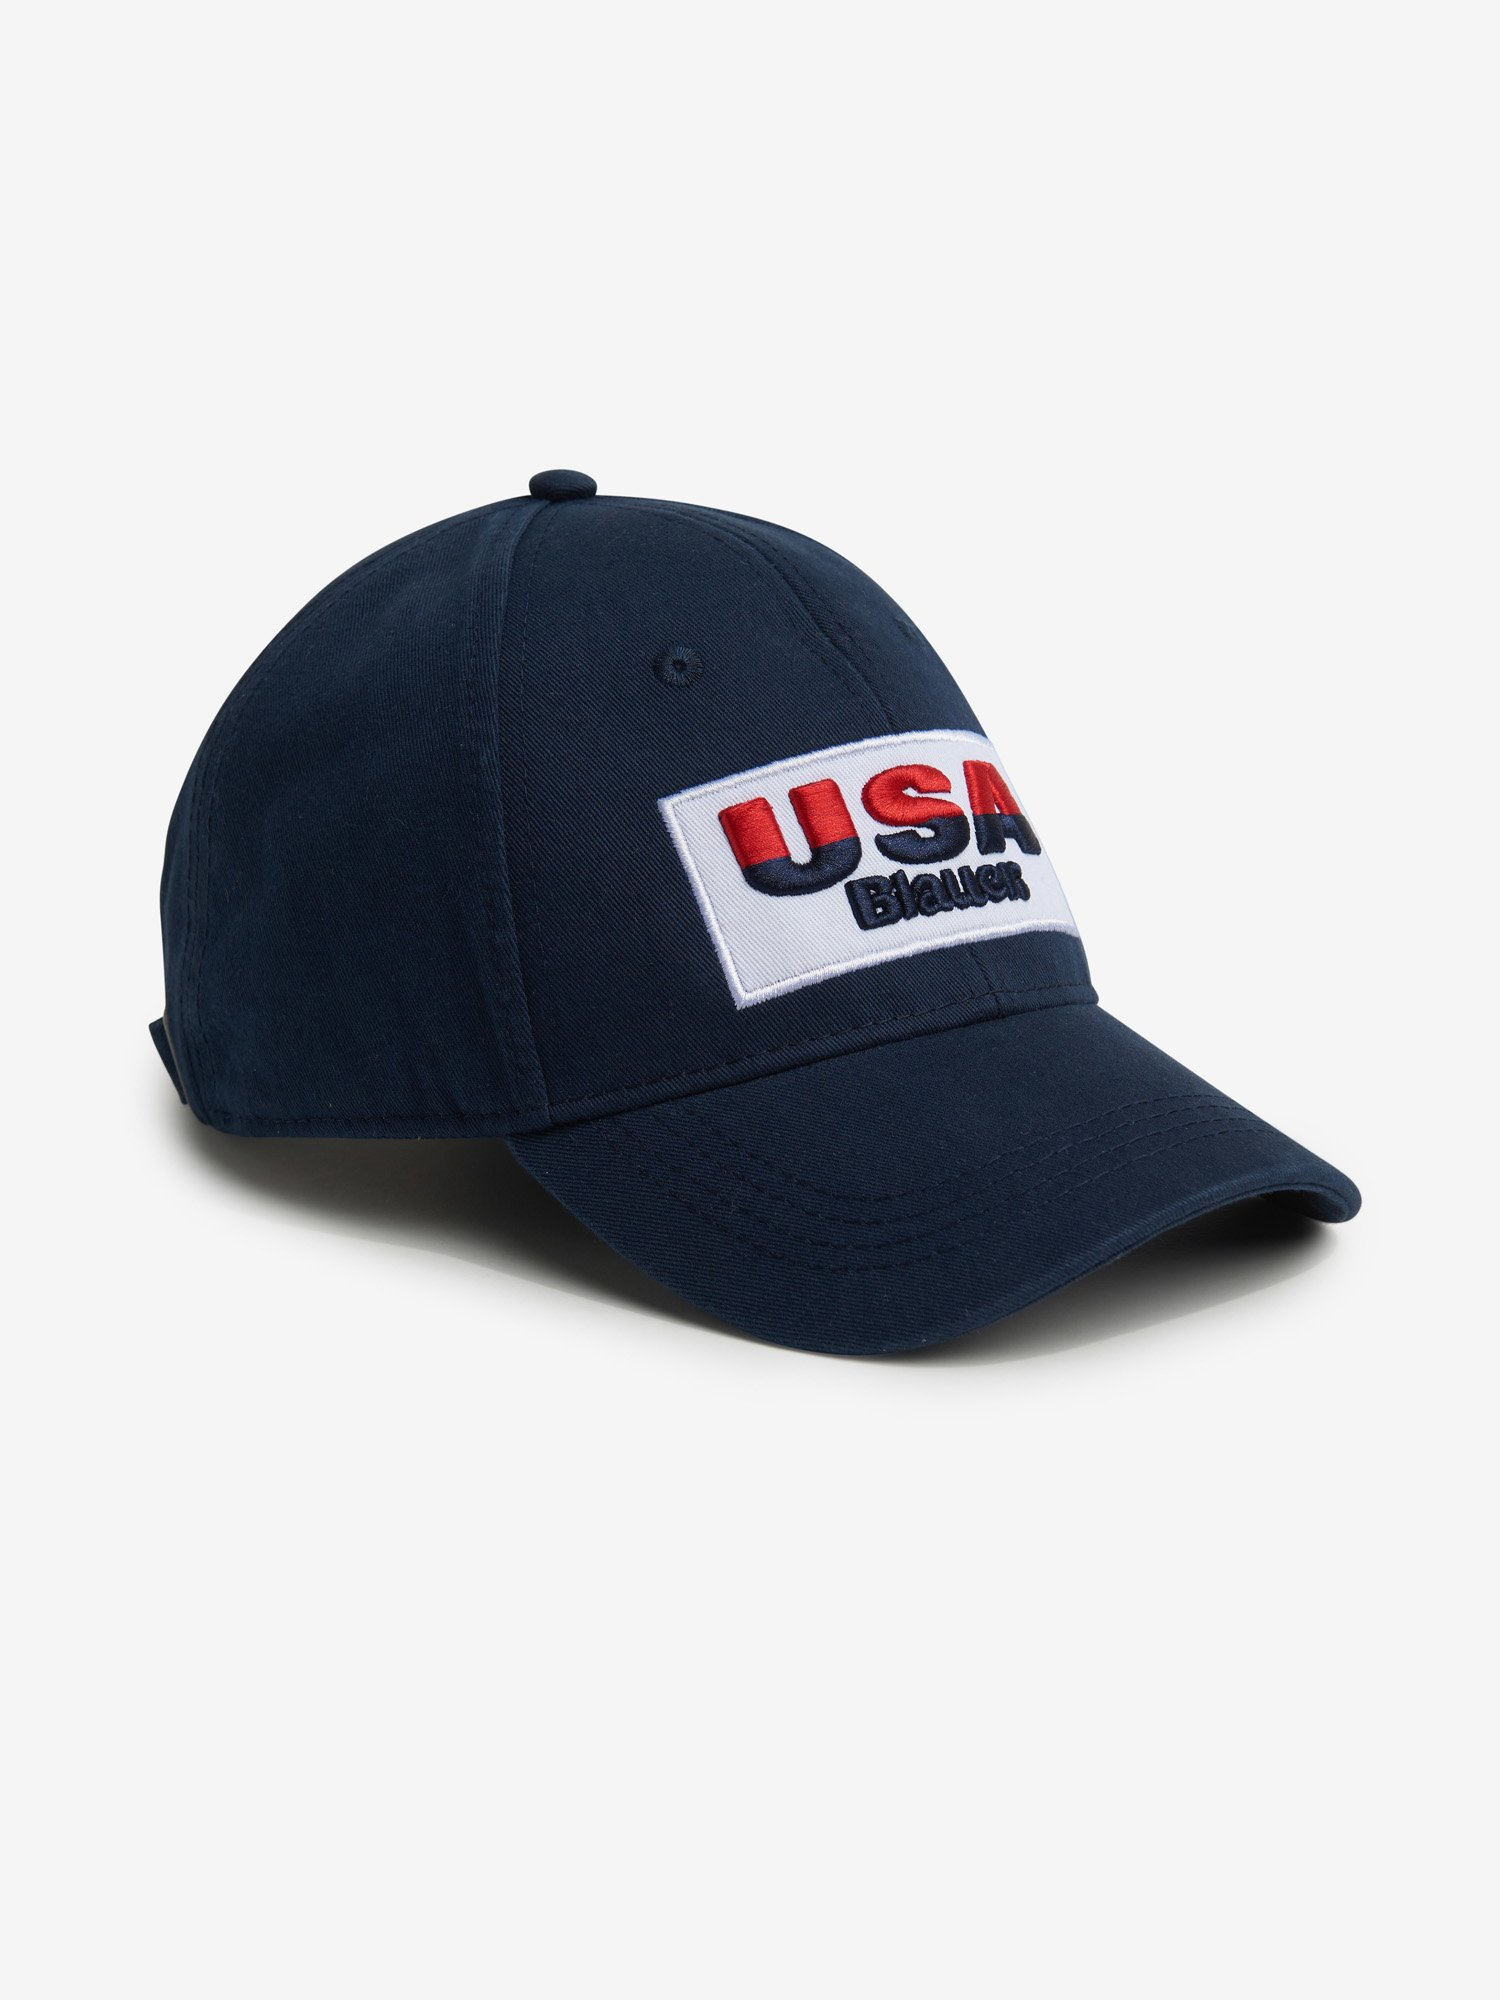 GORRA BÉISBOL BOSTON SINCE 1936 - Blauer